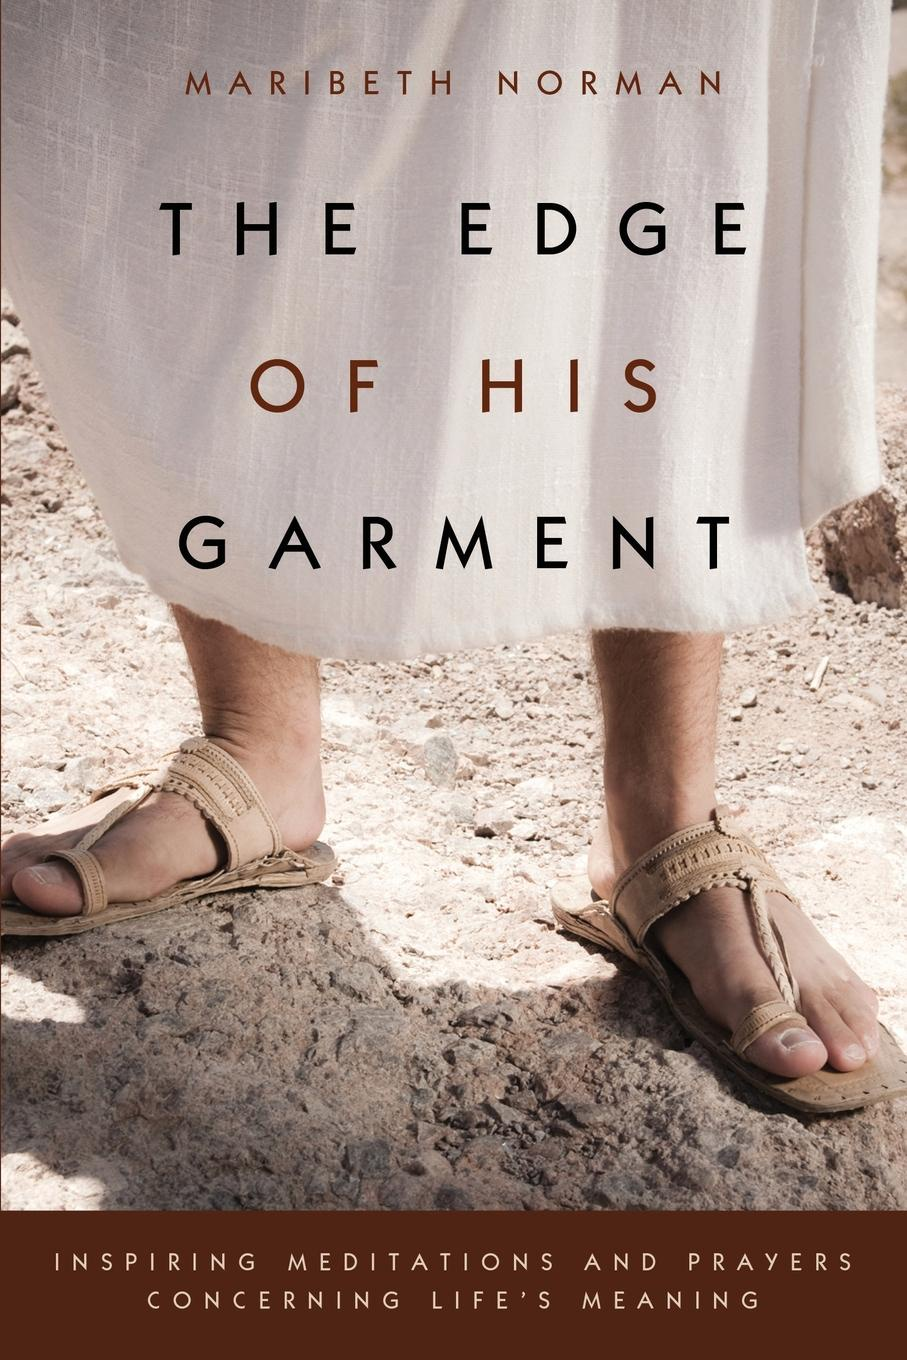 Maribeth Norman The Edge of His Garment will irons the possibilities of oneness doorways to life s deeper meaning wonder and joy